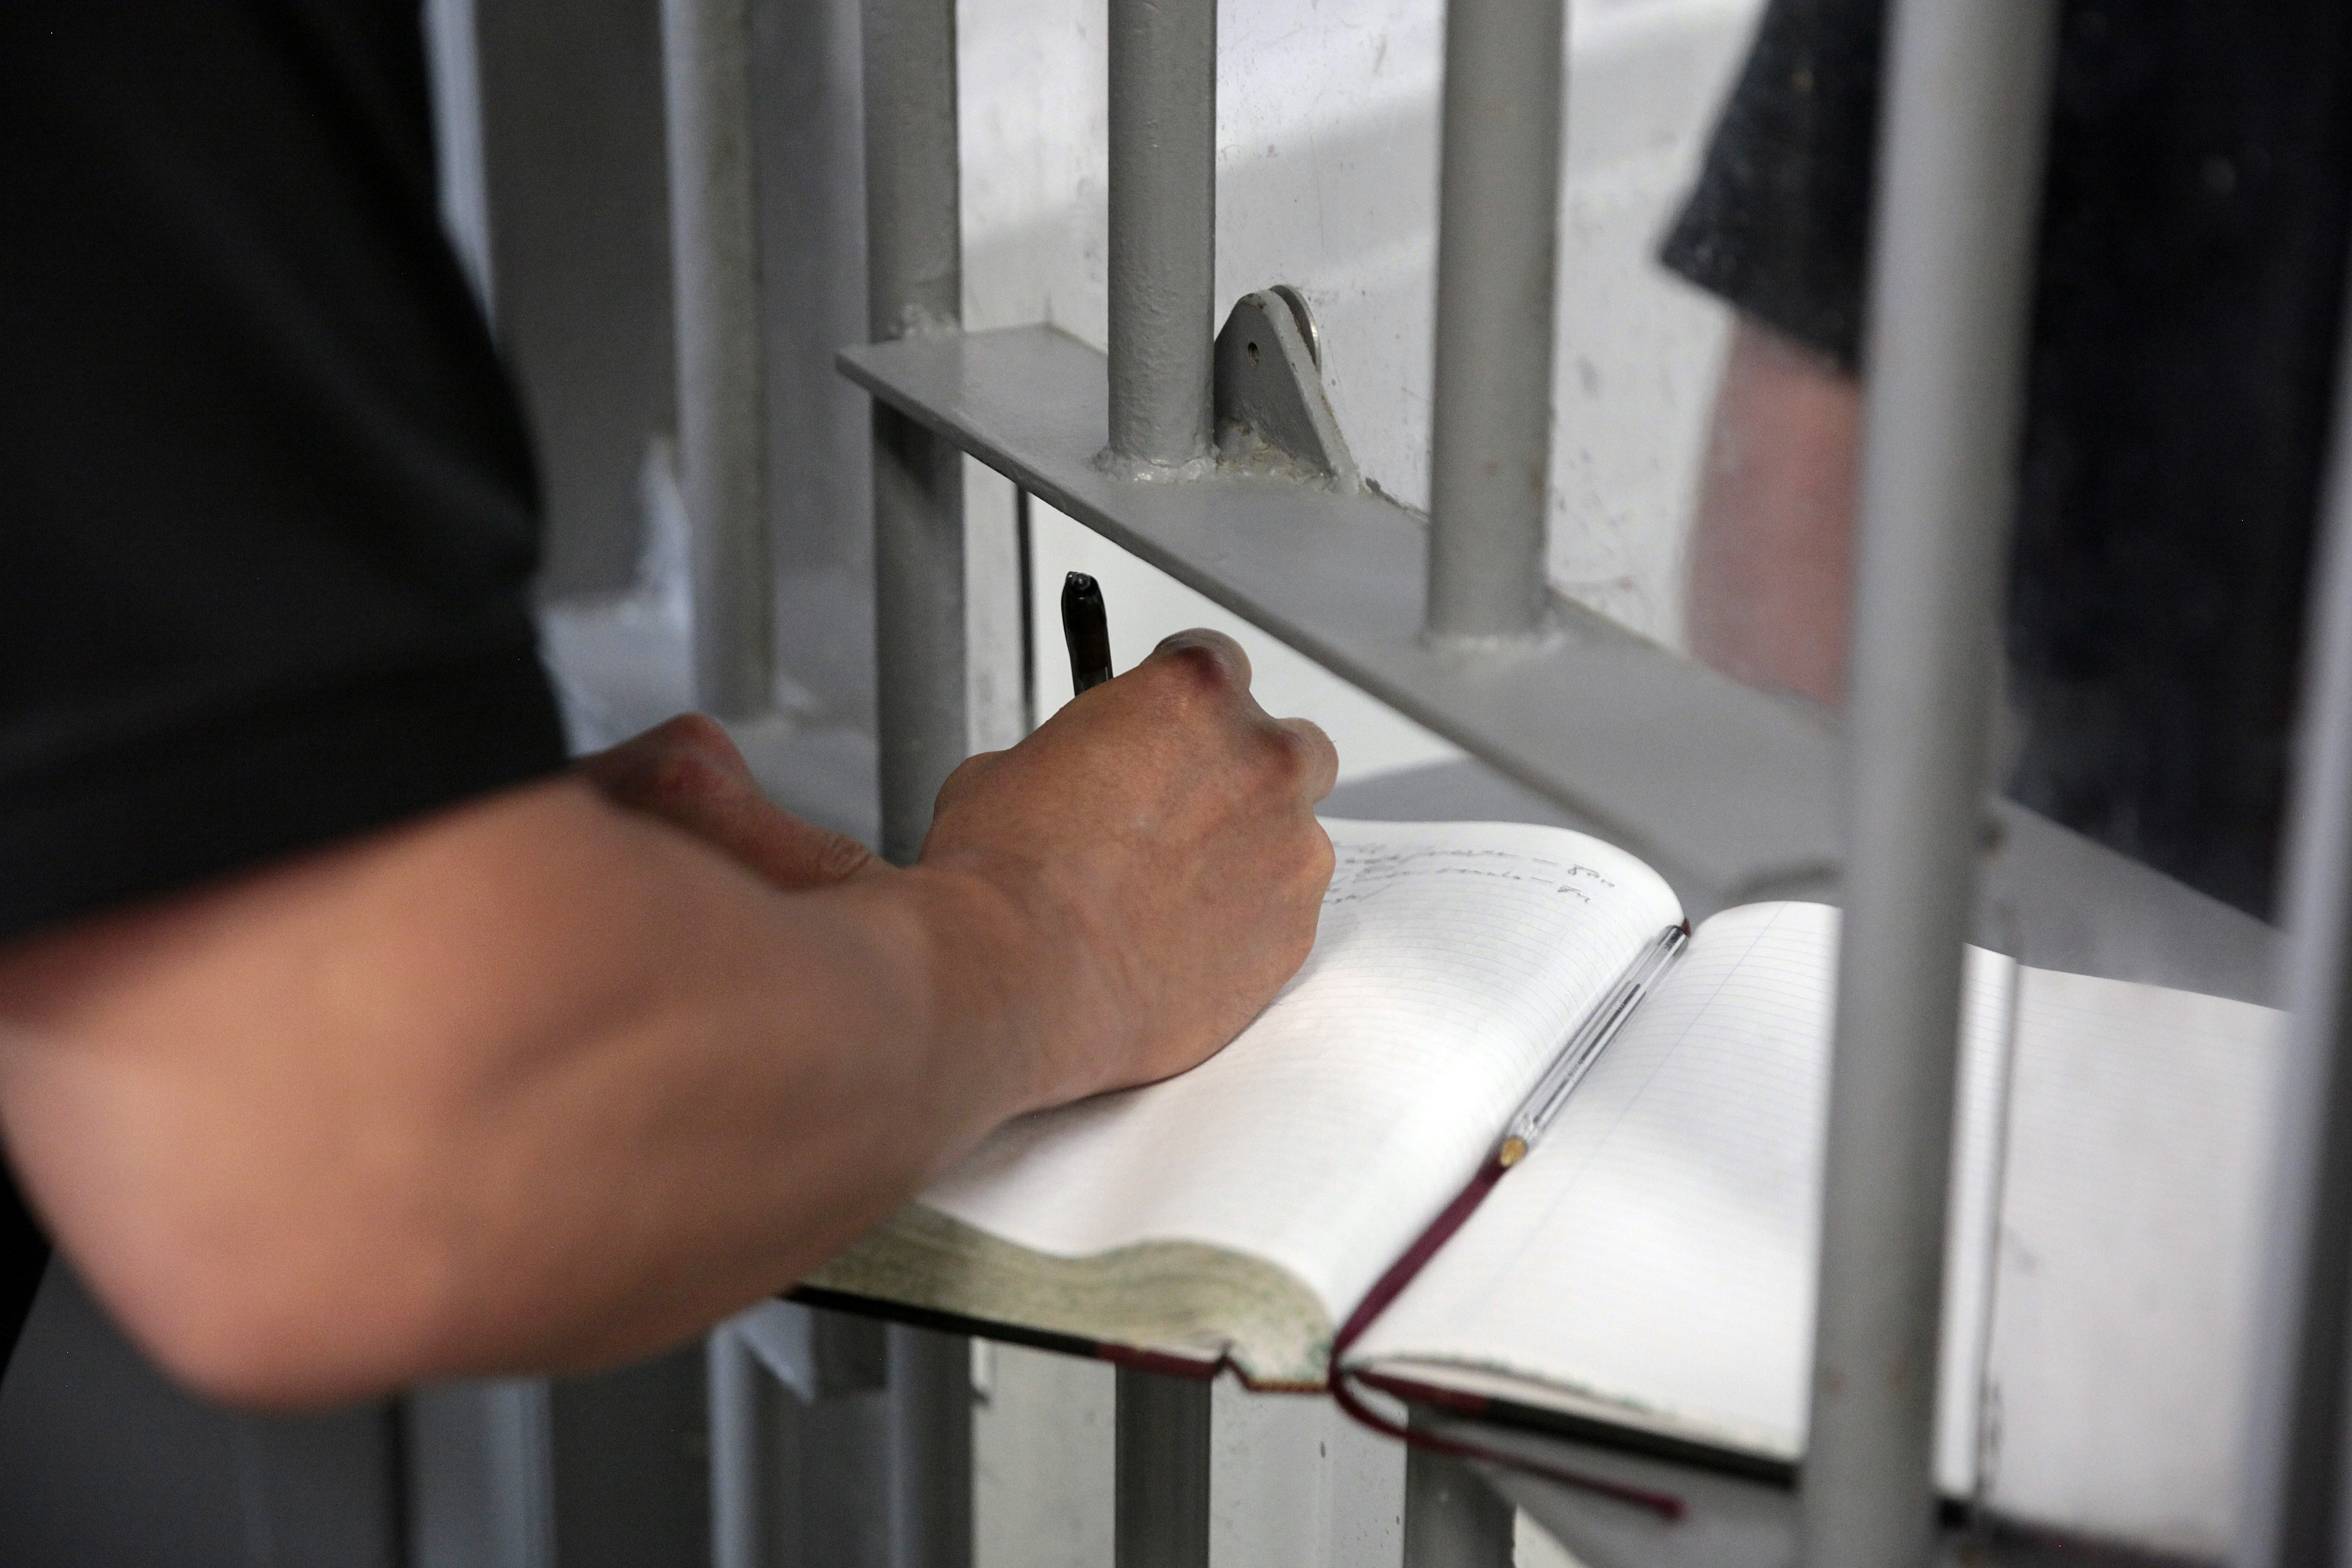 A guard signs several visitors from KTOO in at the Lemon Creek Correctional Center on June 18, 2016, in Juneau, Alaska. (Photo by Rashah McChesney/KTOO)